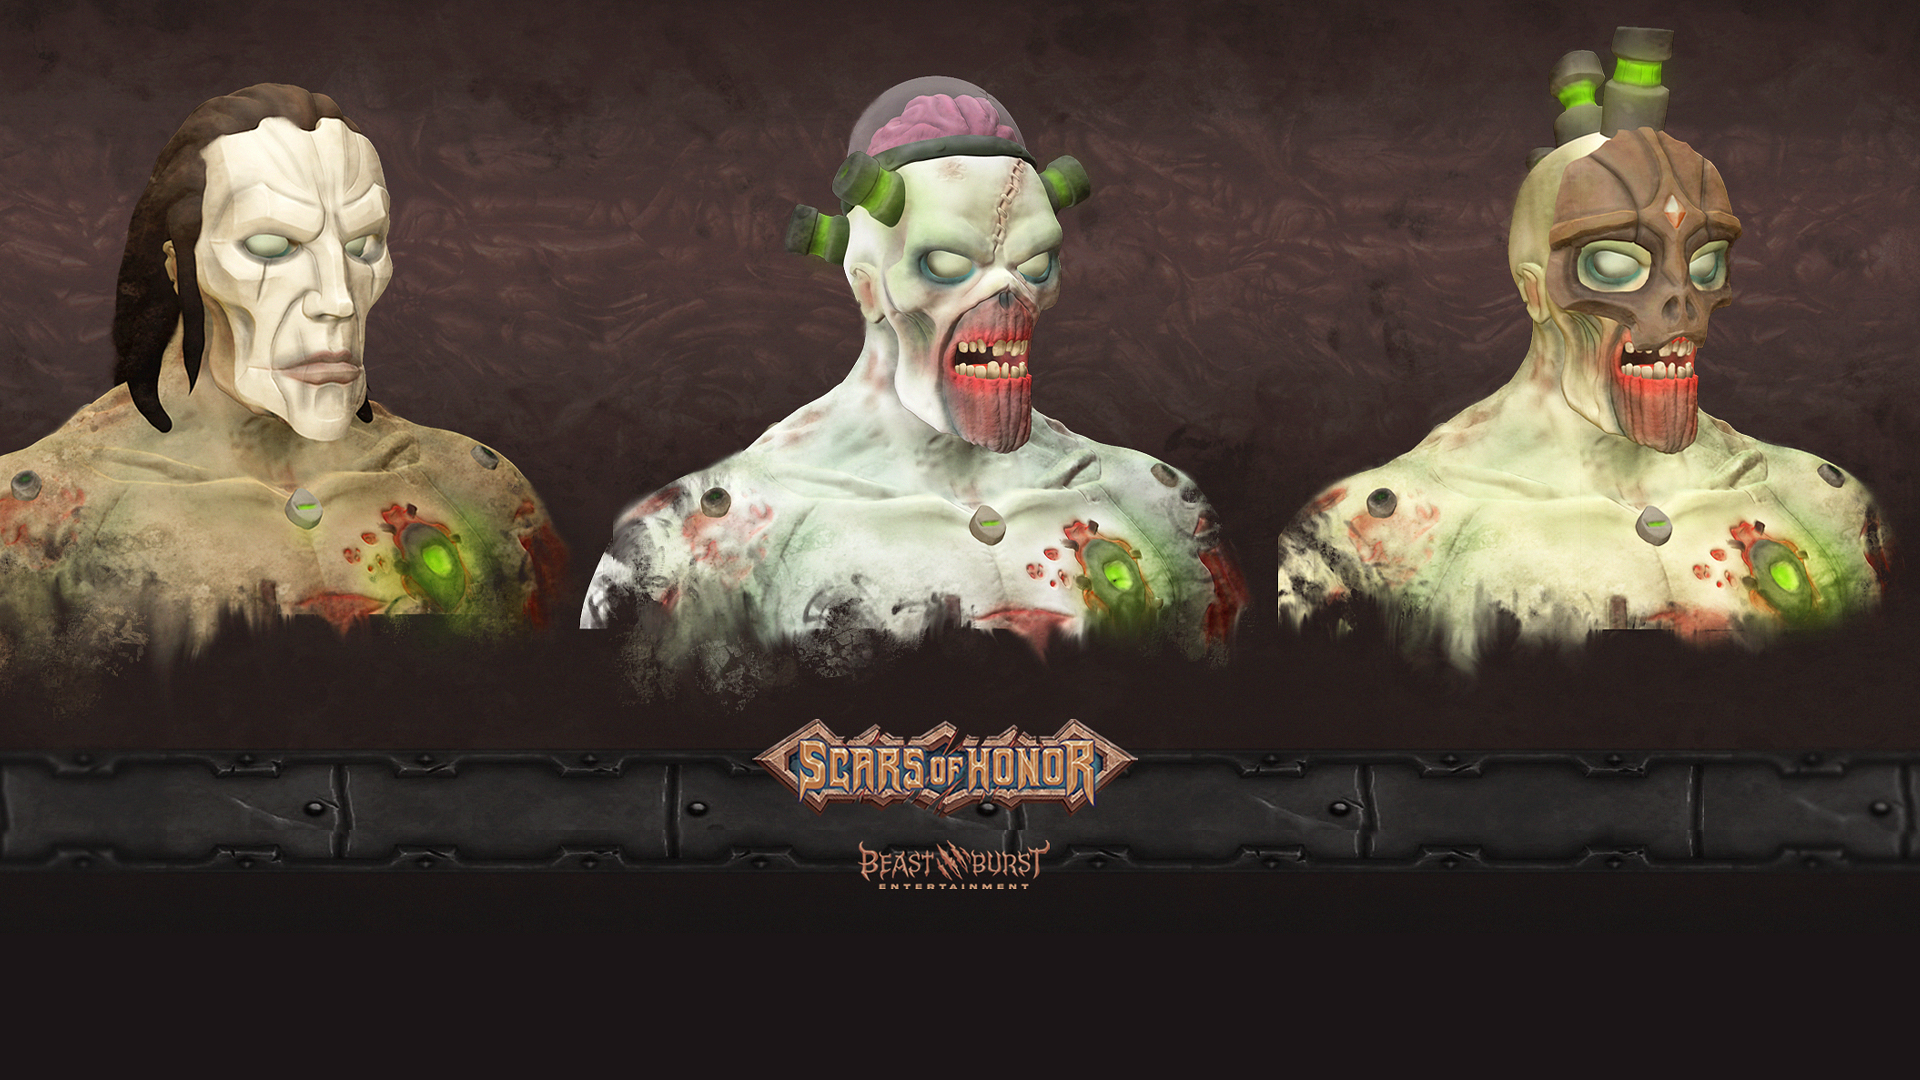 The Undead - Serving no one